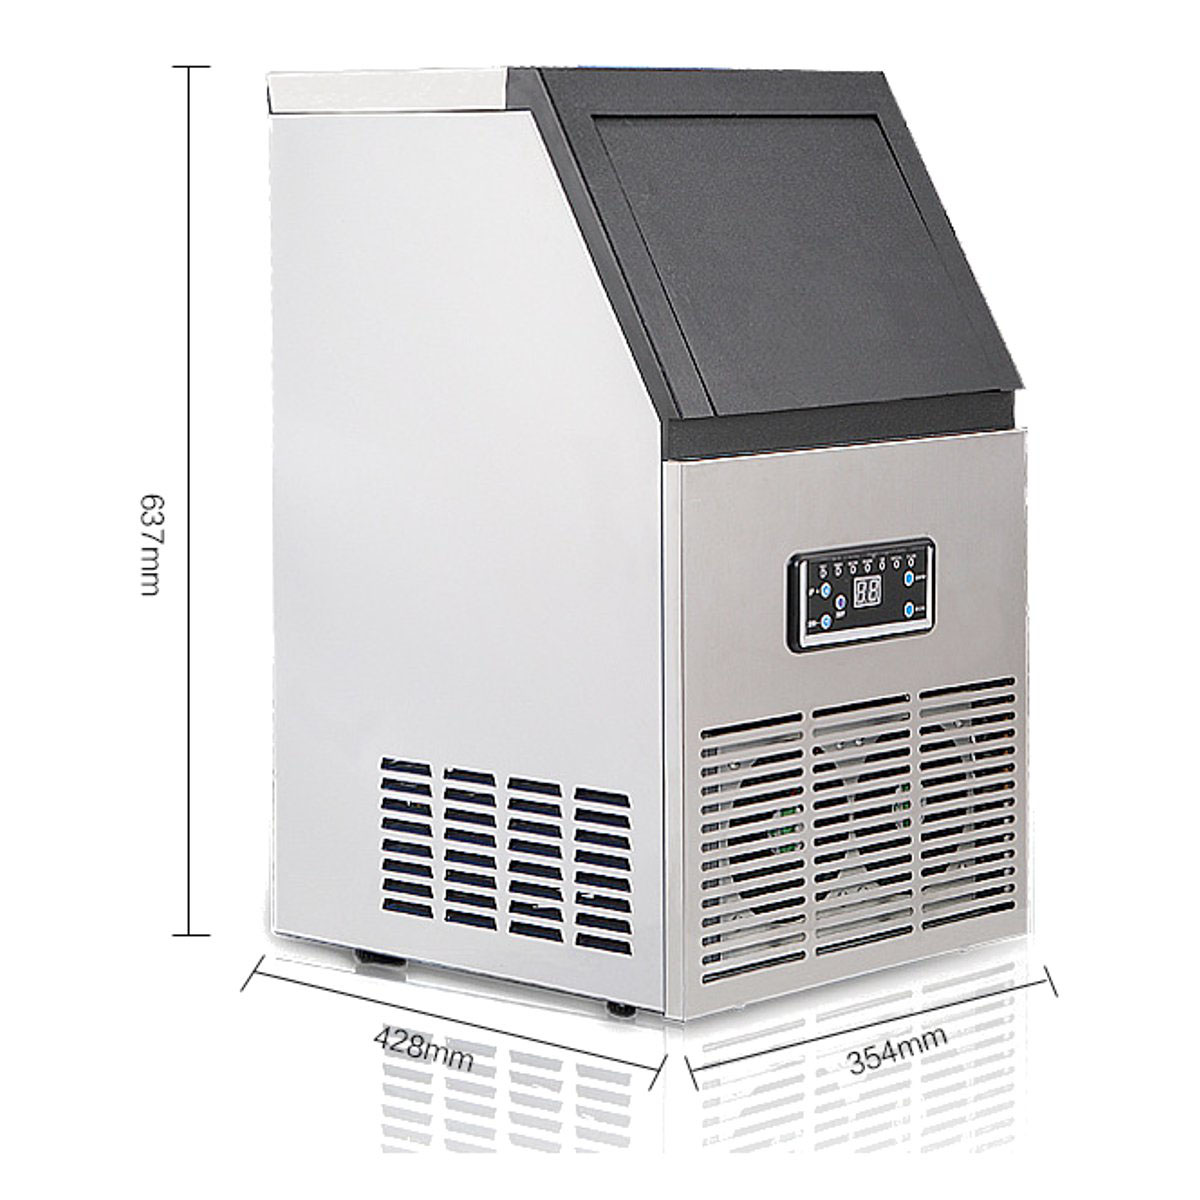 110V 230W 60Kg/24hr Auto Ice Cube Maker Machine Commercial Icemaker Stainless Steel